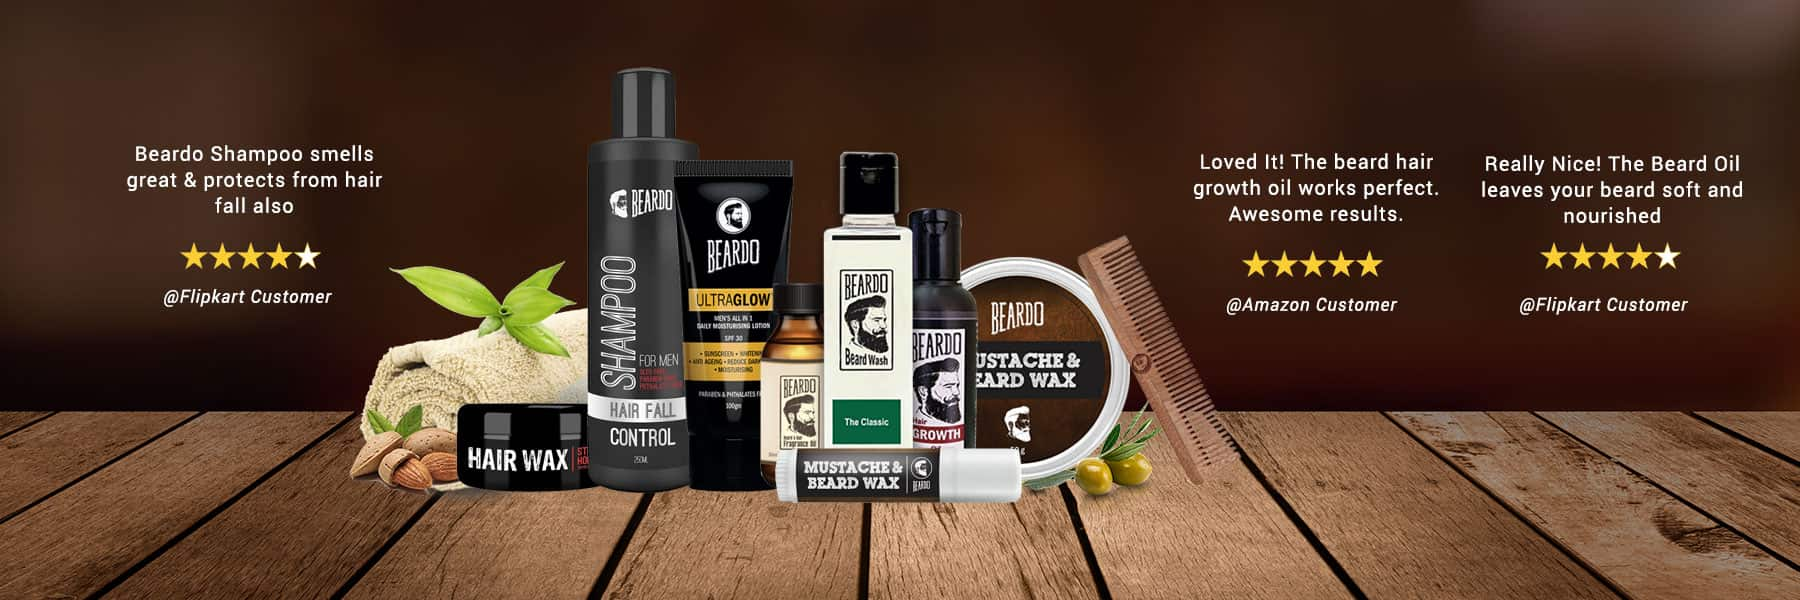 News On Mardeco Products: Marico To Acquire 45% Stake In Male Grooming Products